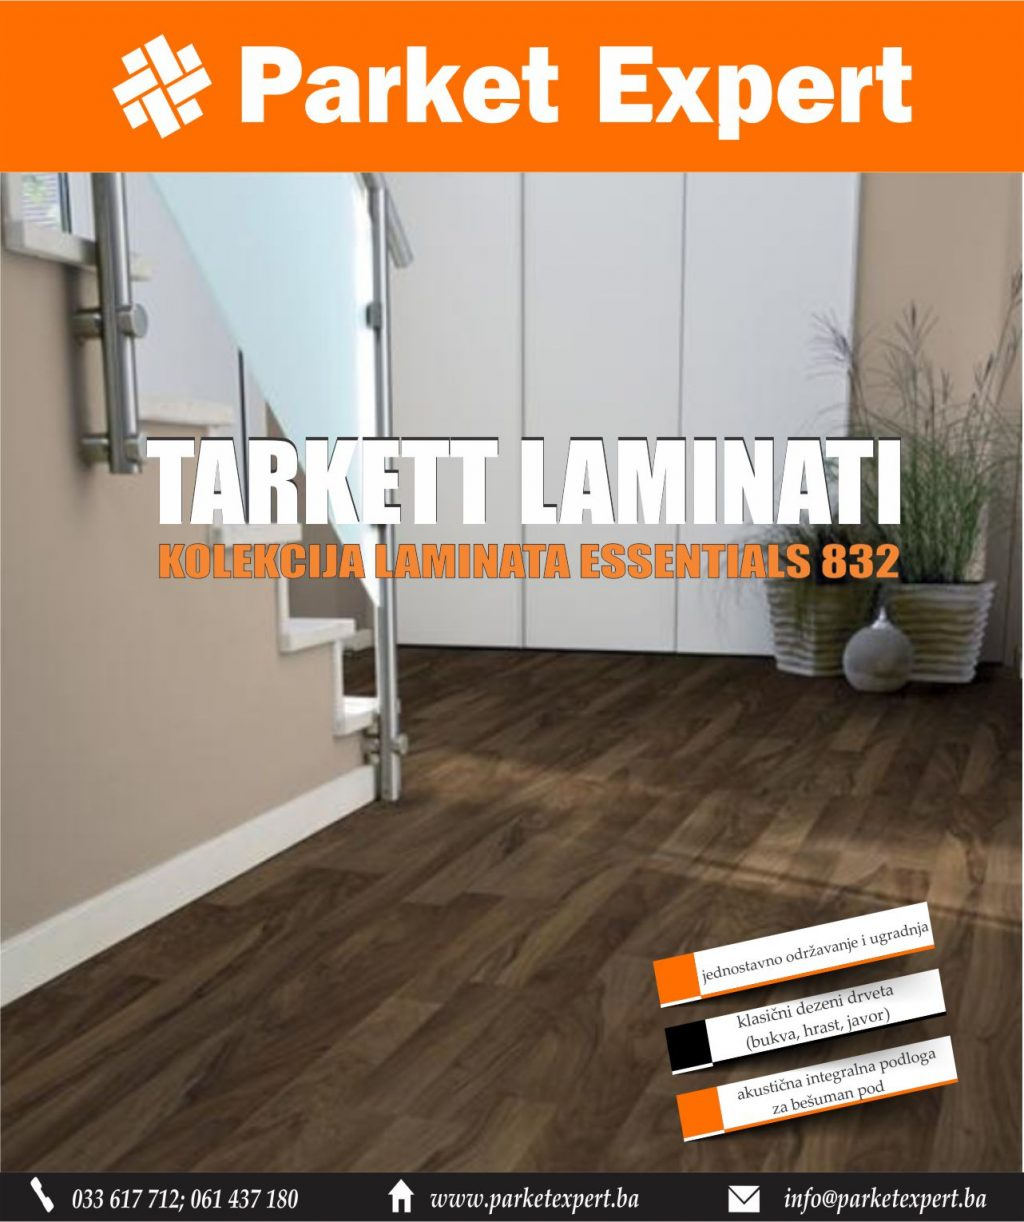 laminati essentials